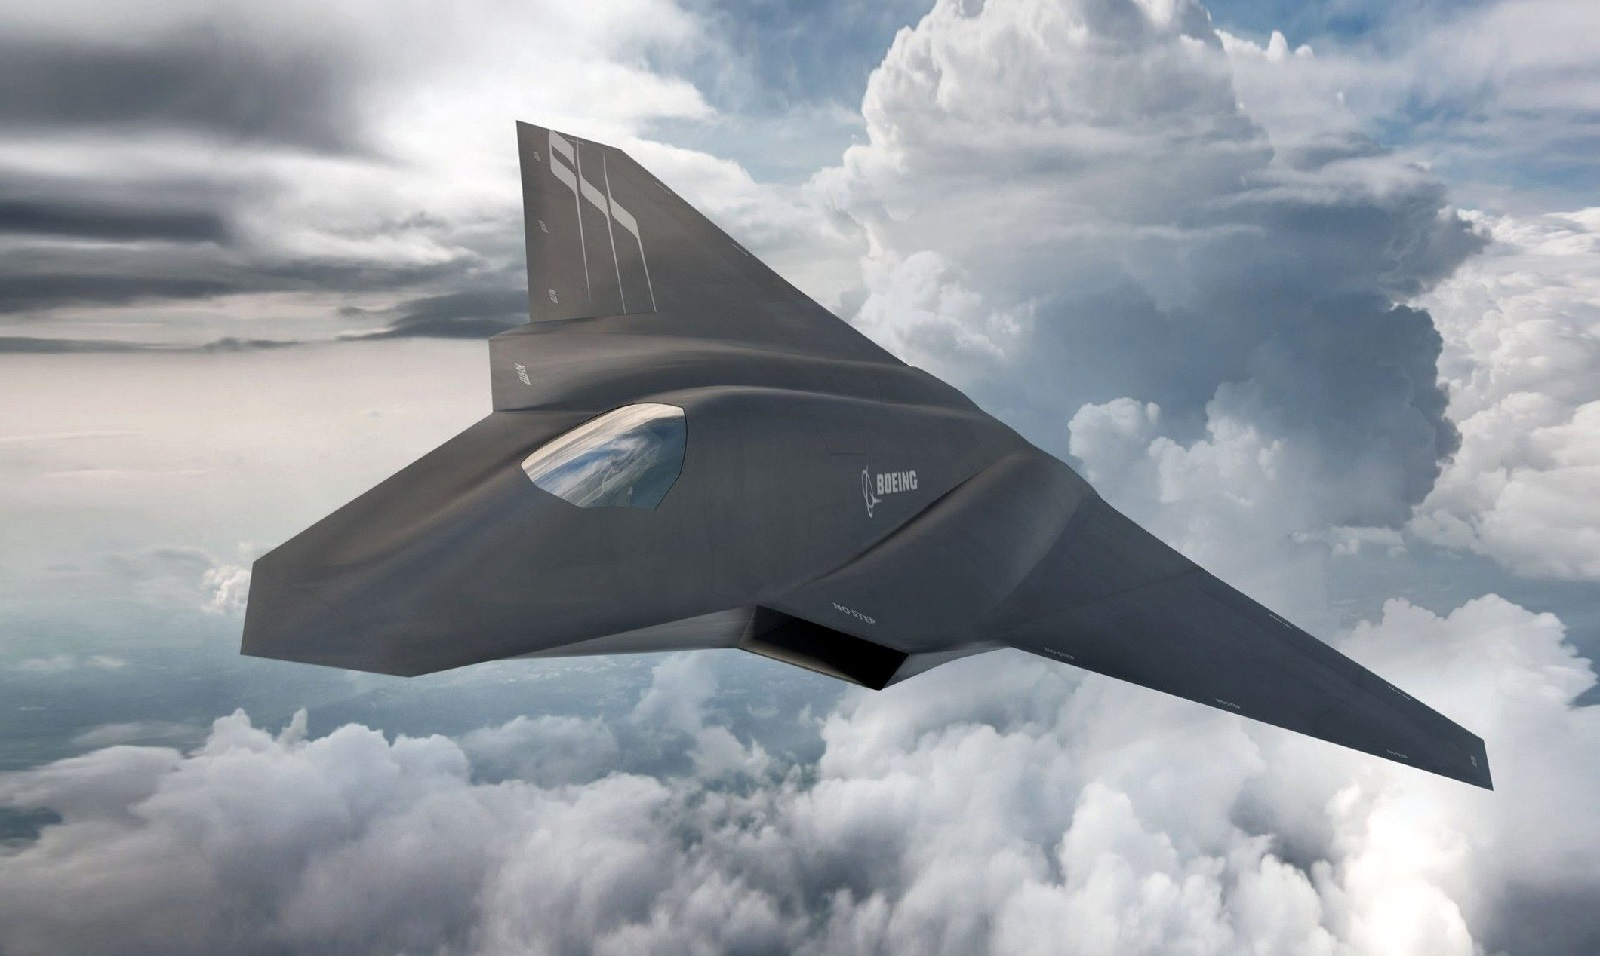 What Comes After the F-35: A 6th Generation Stealth Fighter with Lasers?